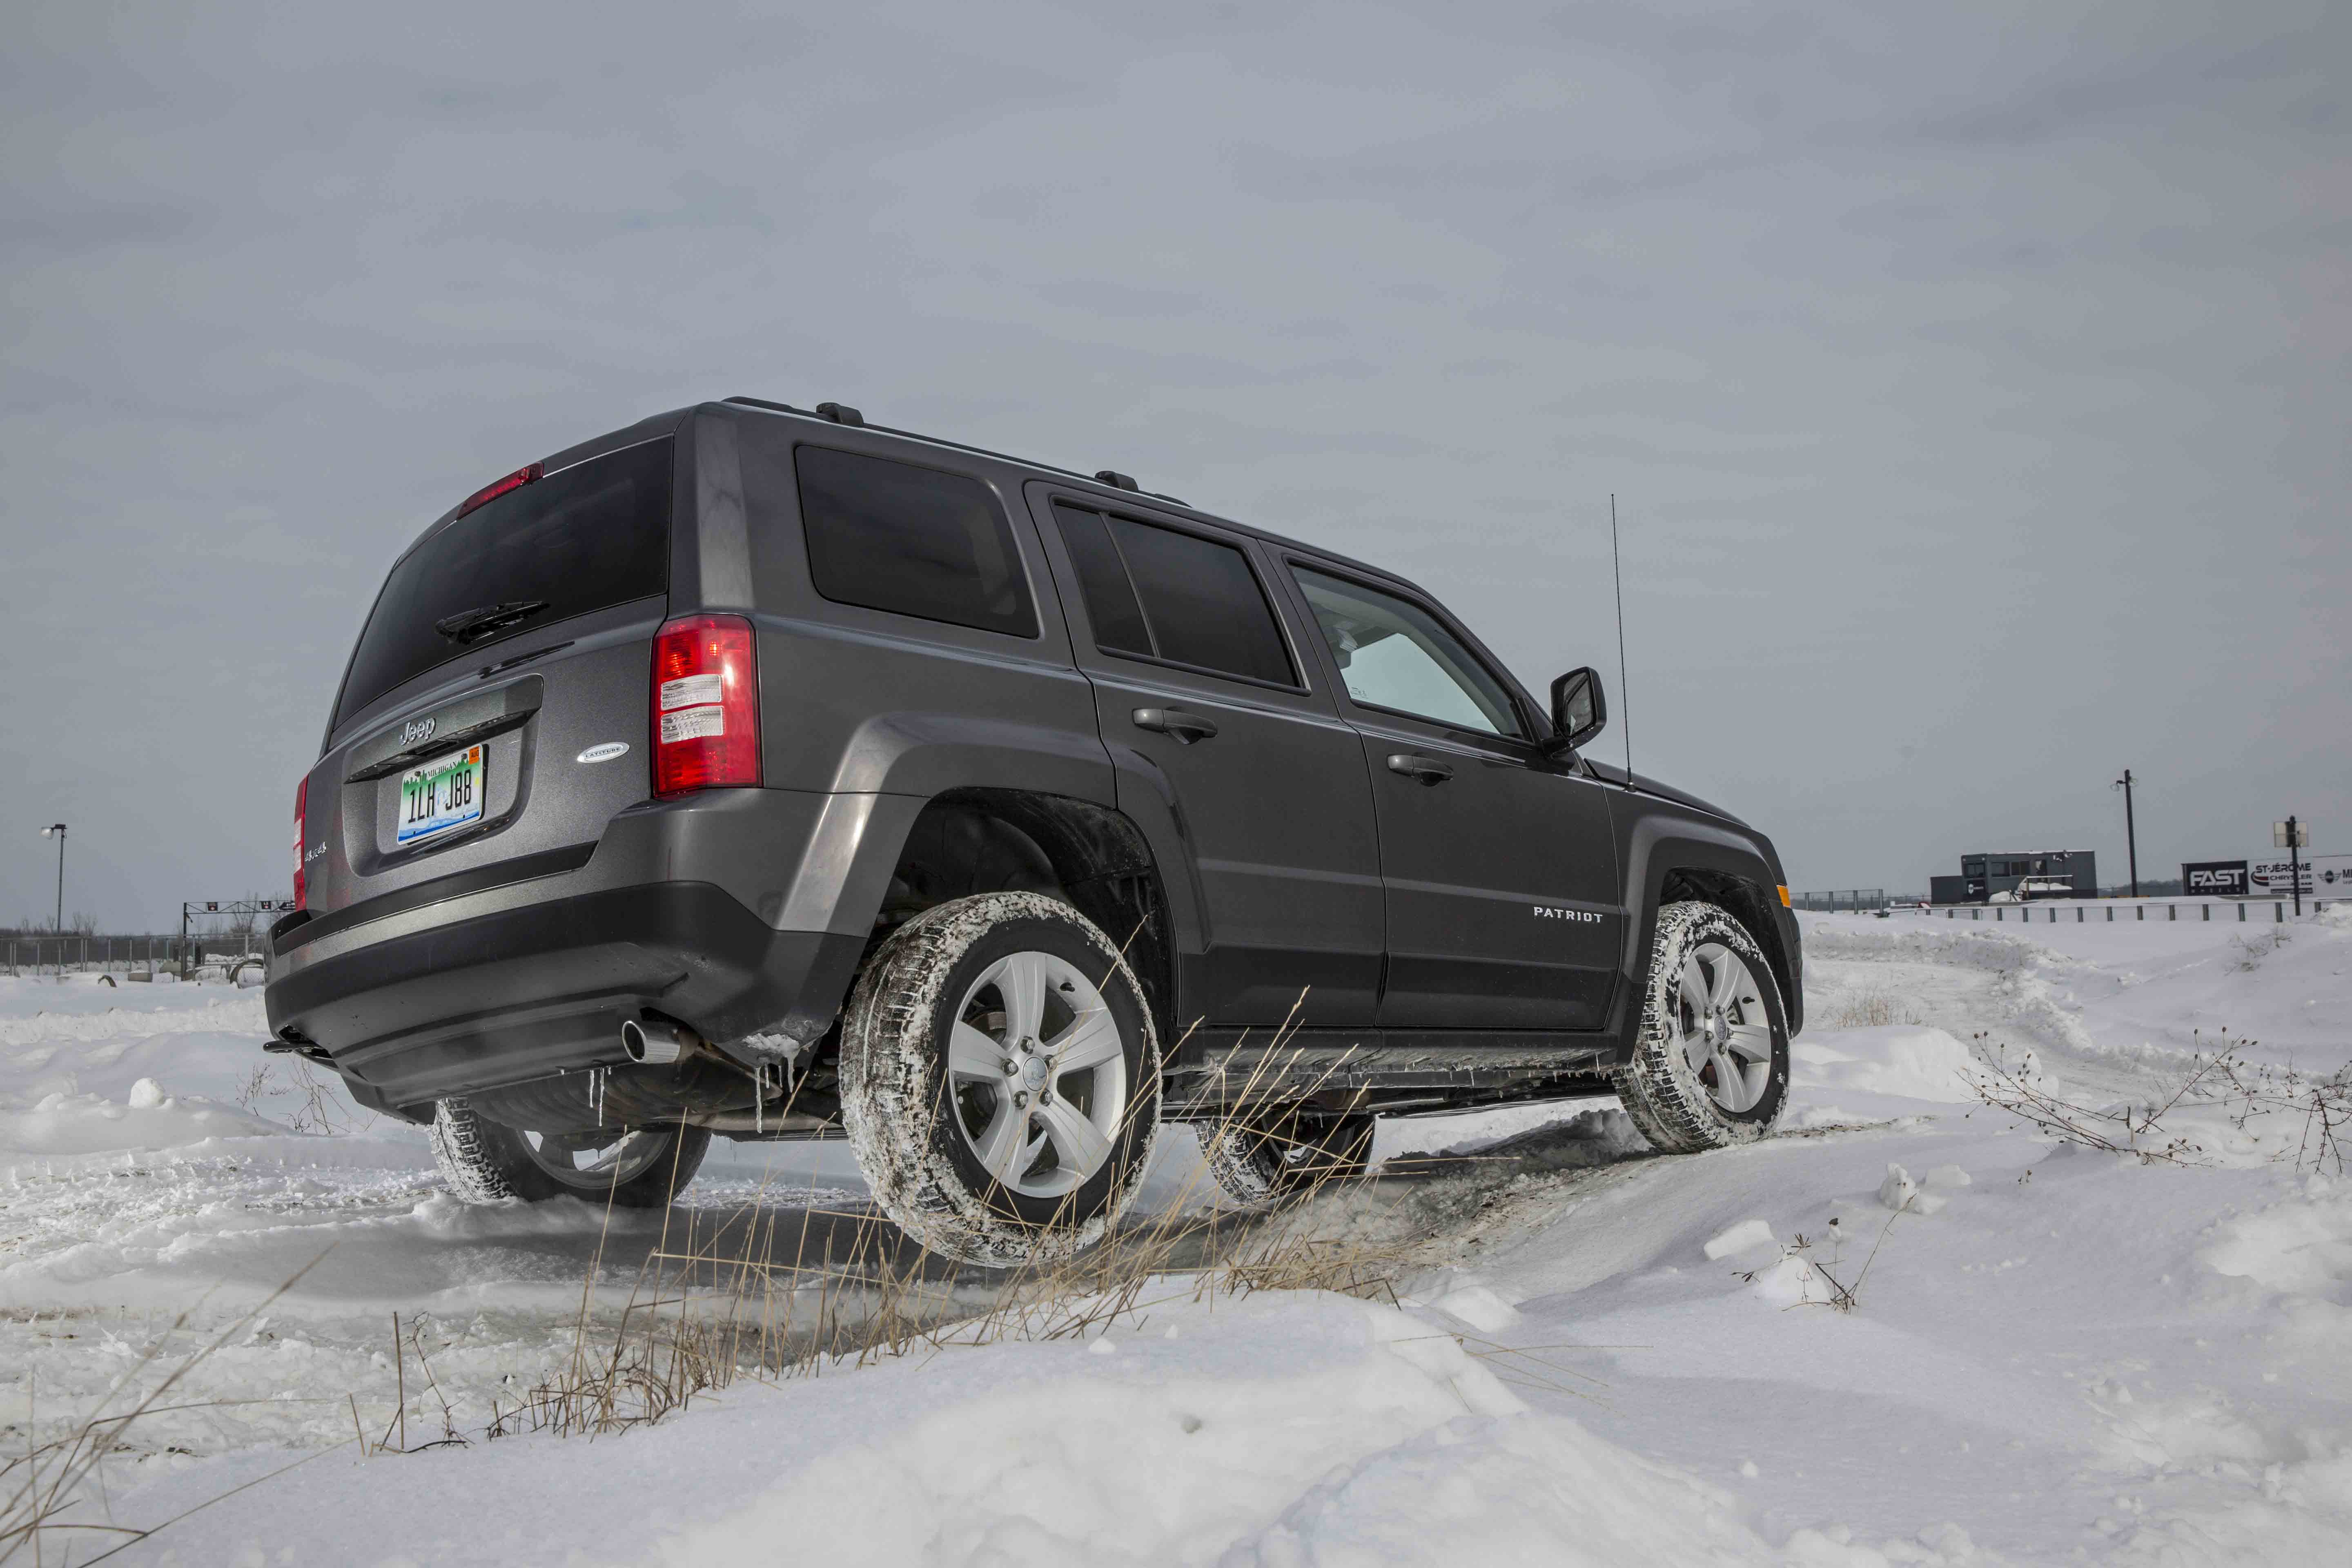 SUV for Winter Driving available in Sterling Heights, MI at Sterling Heights Dodge Chrysler Jeep Ram